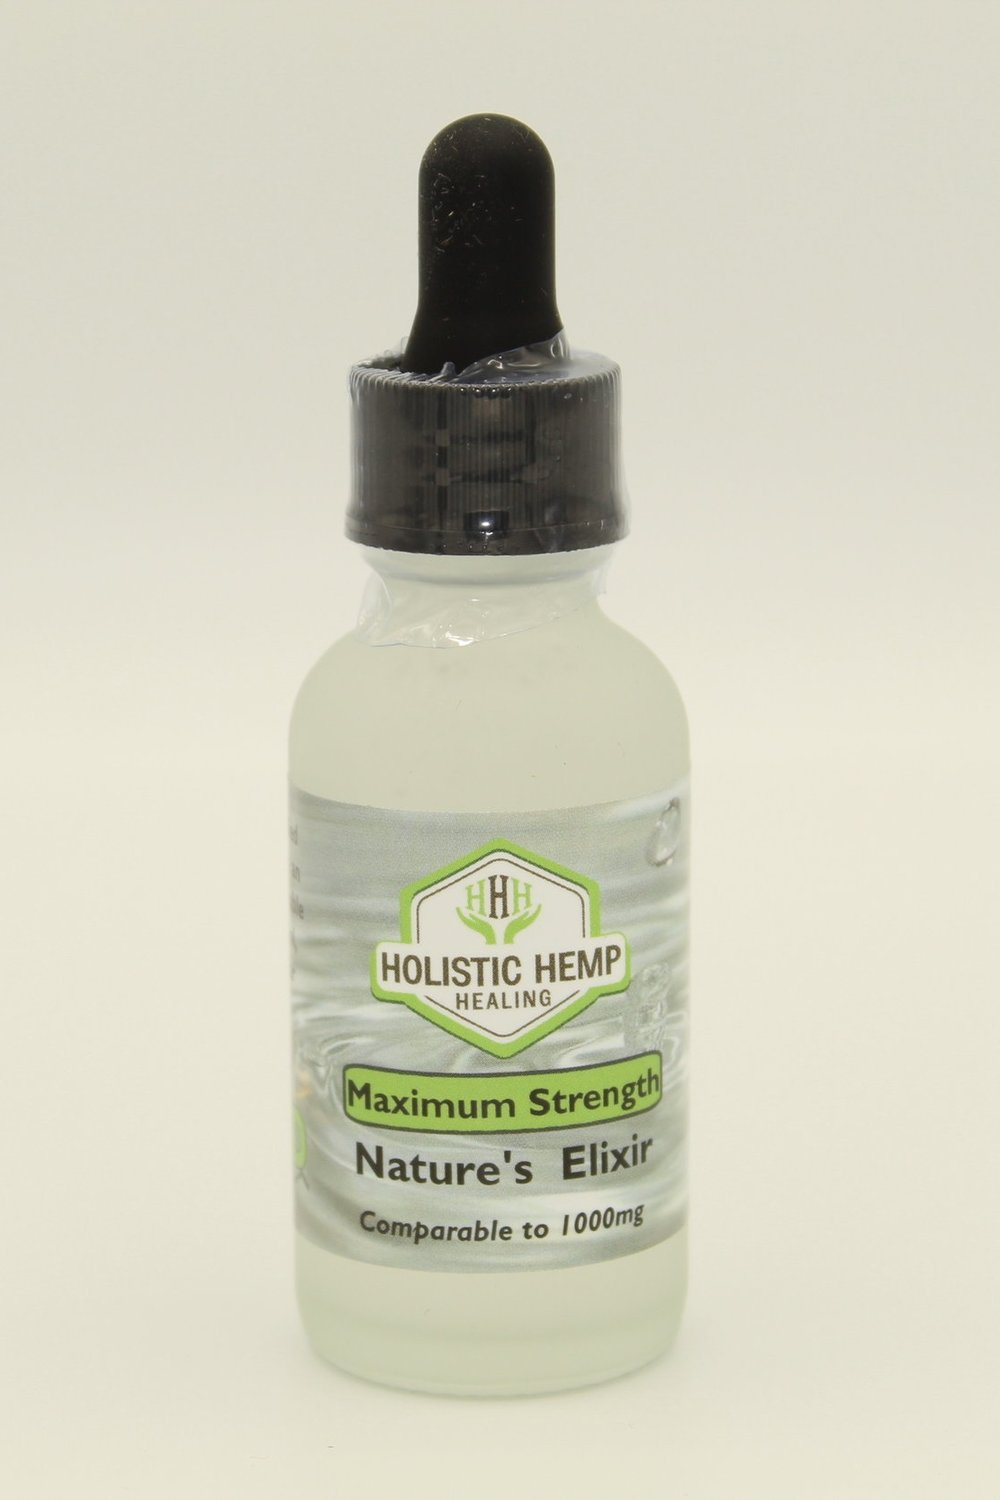 Nature's Elixir MAX - $120 - 30 mlIn addition to Max Strength Pharma Grade Water Soluble CBD derived from industrial hemp, we use natural spring water with an alkaline pH increased 9.1+, which creates an overall tasteless Elixir. This product has a faster absorption rate than an oil and is 100% THC Free.POTENCY: HIGHMax Strength is a high-strength potency product. It's not recommended that first time users start out with this elixir. A single serving (1ml) of the Max Strength may not appropriate for all, as they may feel that as little as half a dropper is comfortable for them.DIRECTIONSUse the dropper top to pull up the desired amount of liquid and dispense directly into your mouth or a beverage of choice.